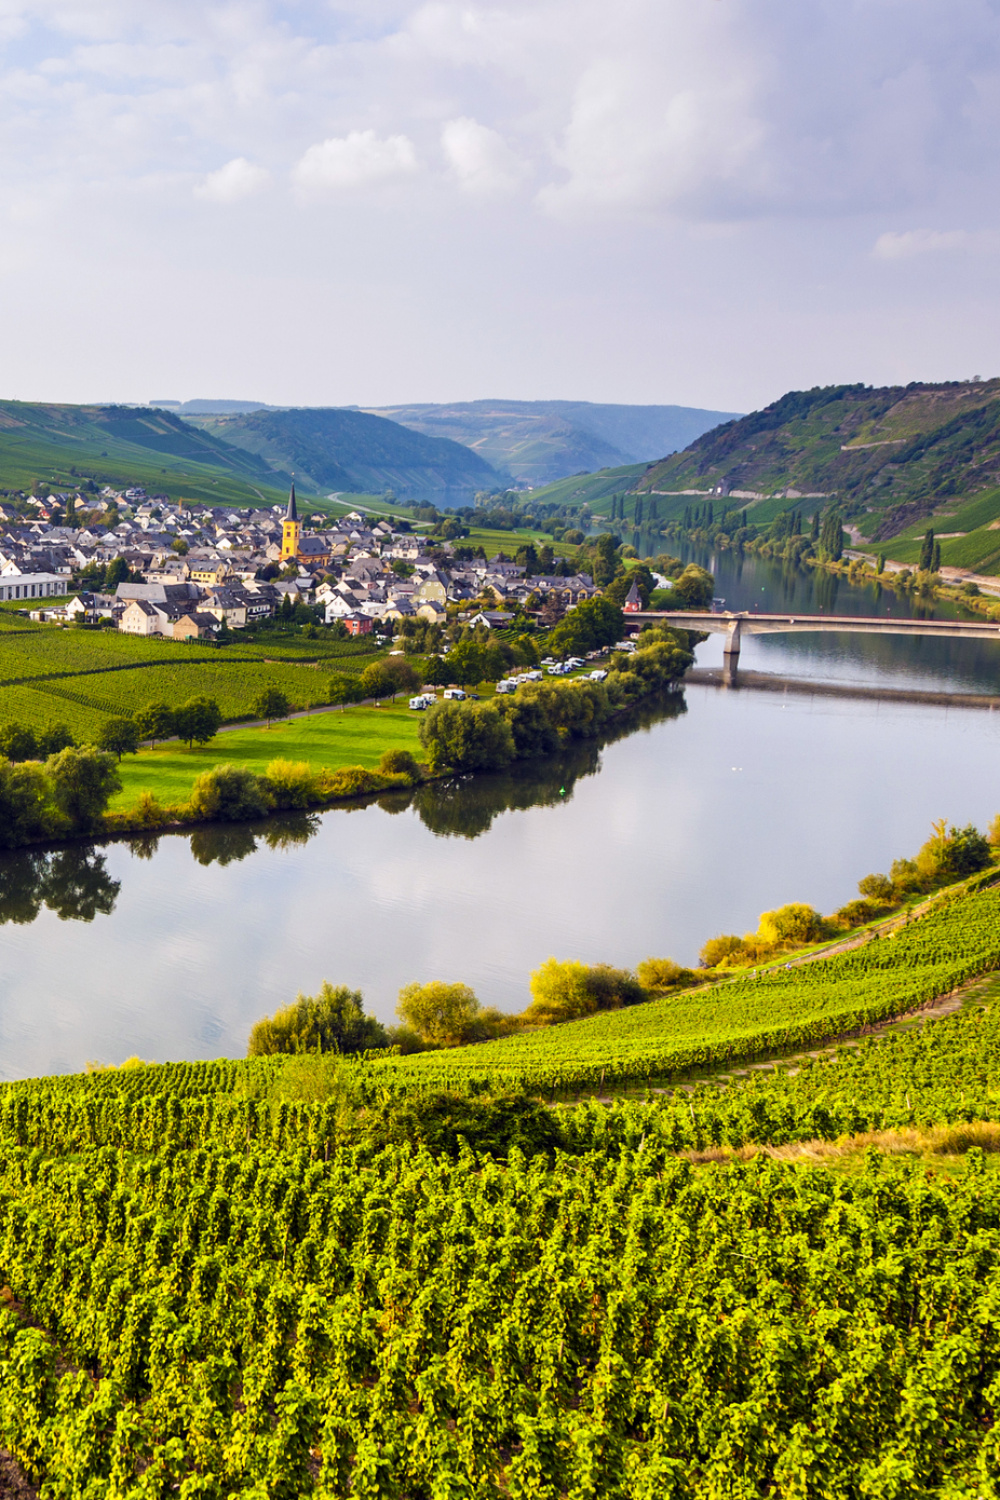 The tributaries of the Rhine